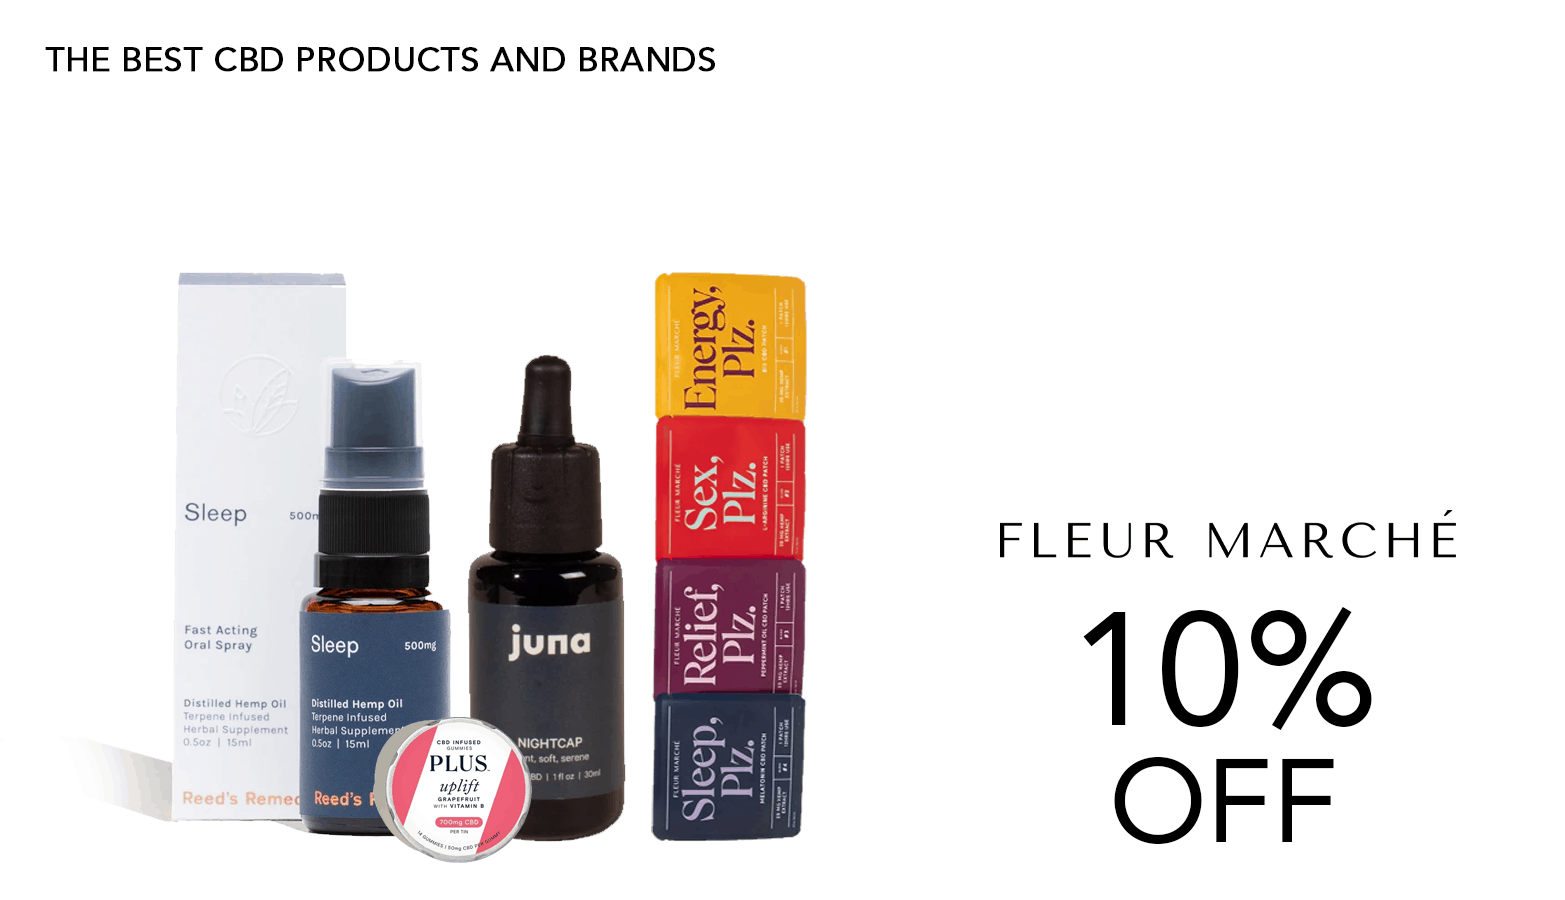 Fleur Marche CBD Coupon Code Offer Website